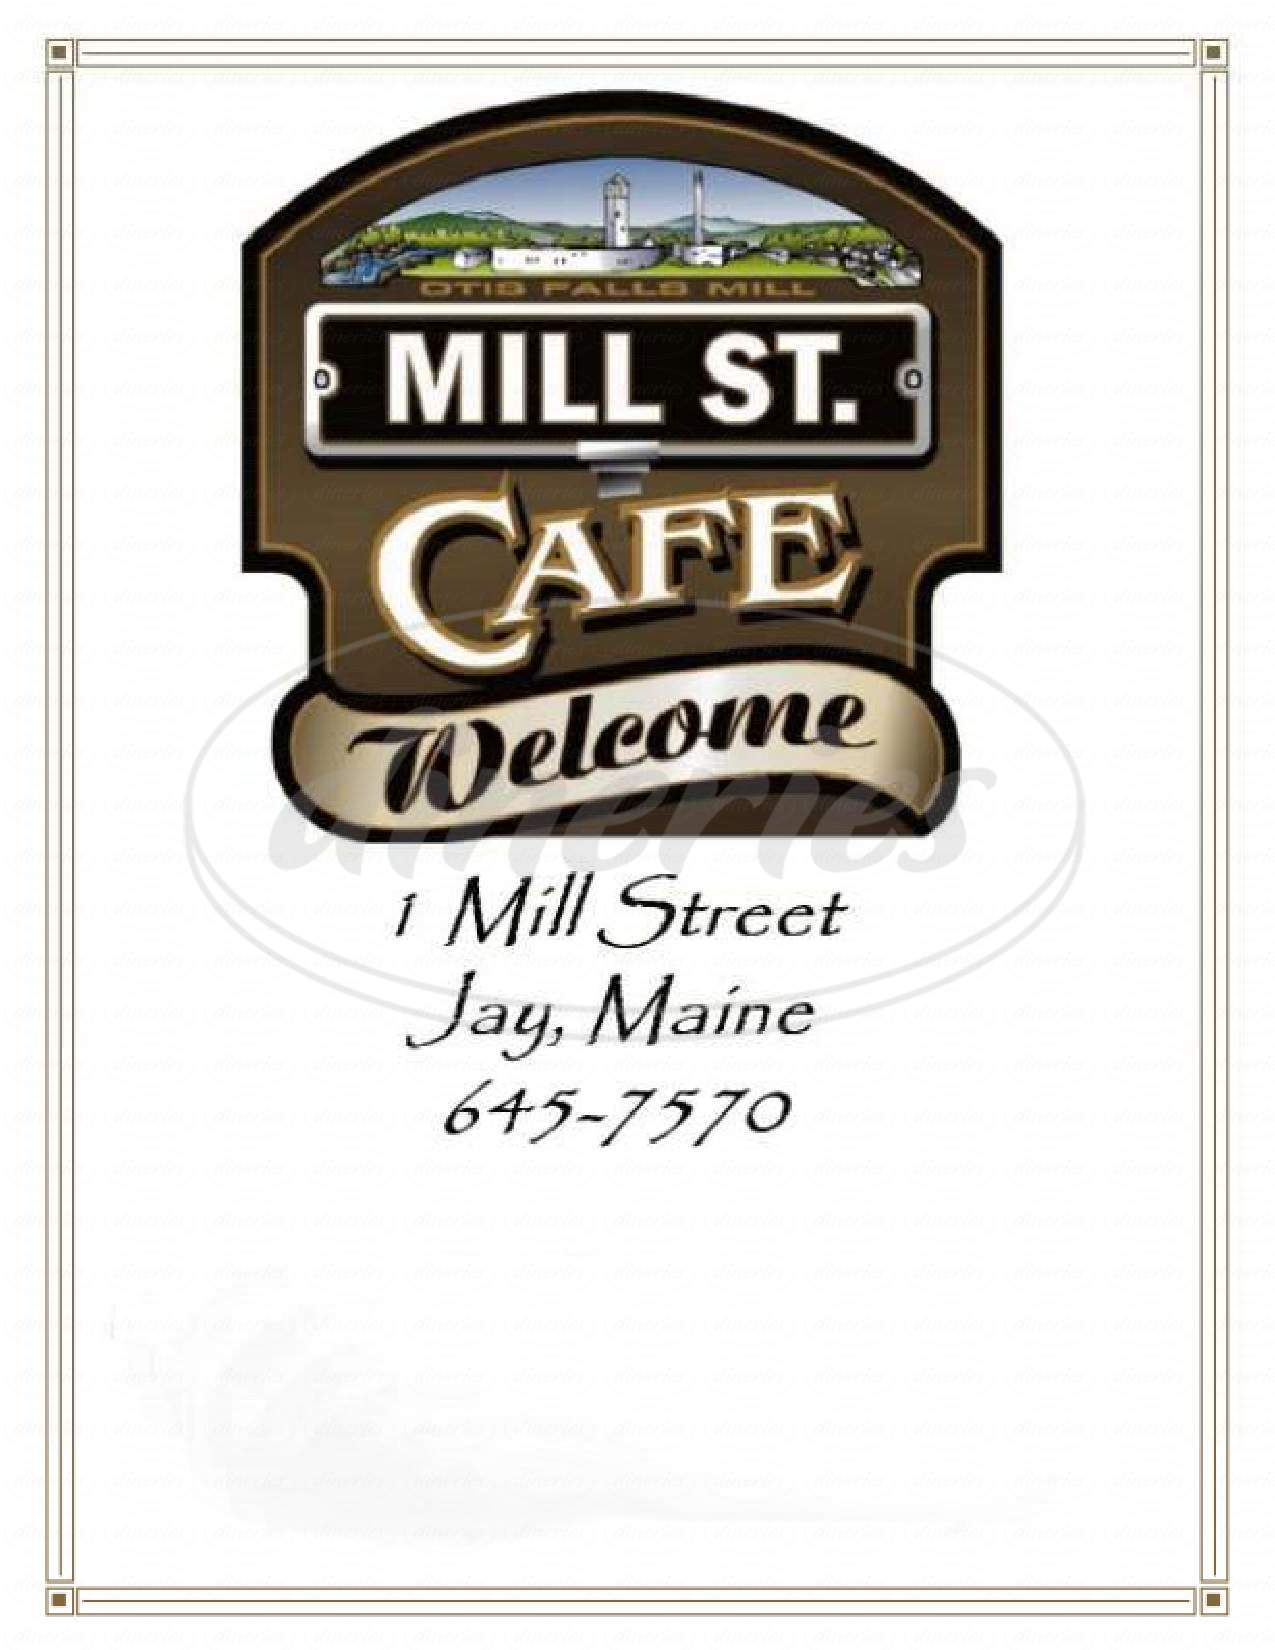 menu for Mill St Cafe